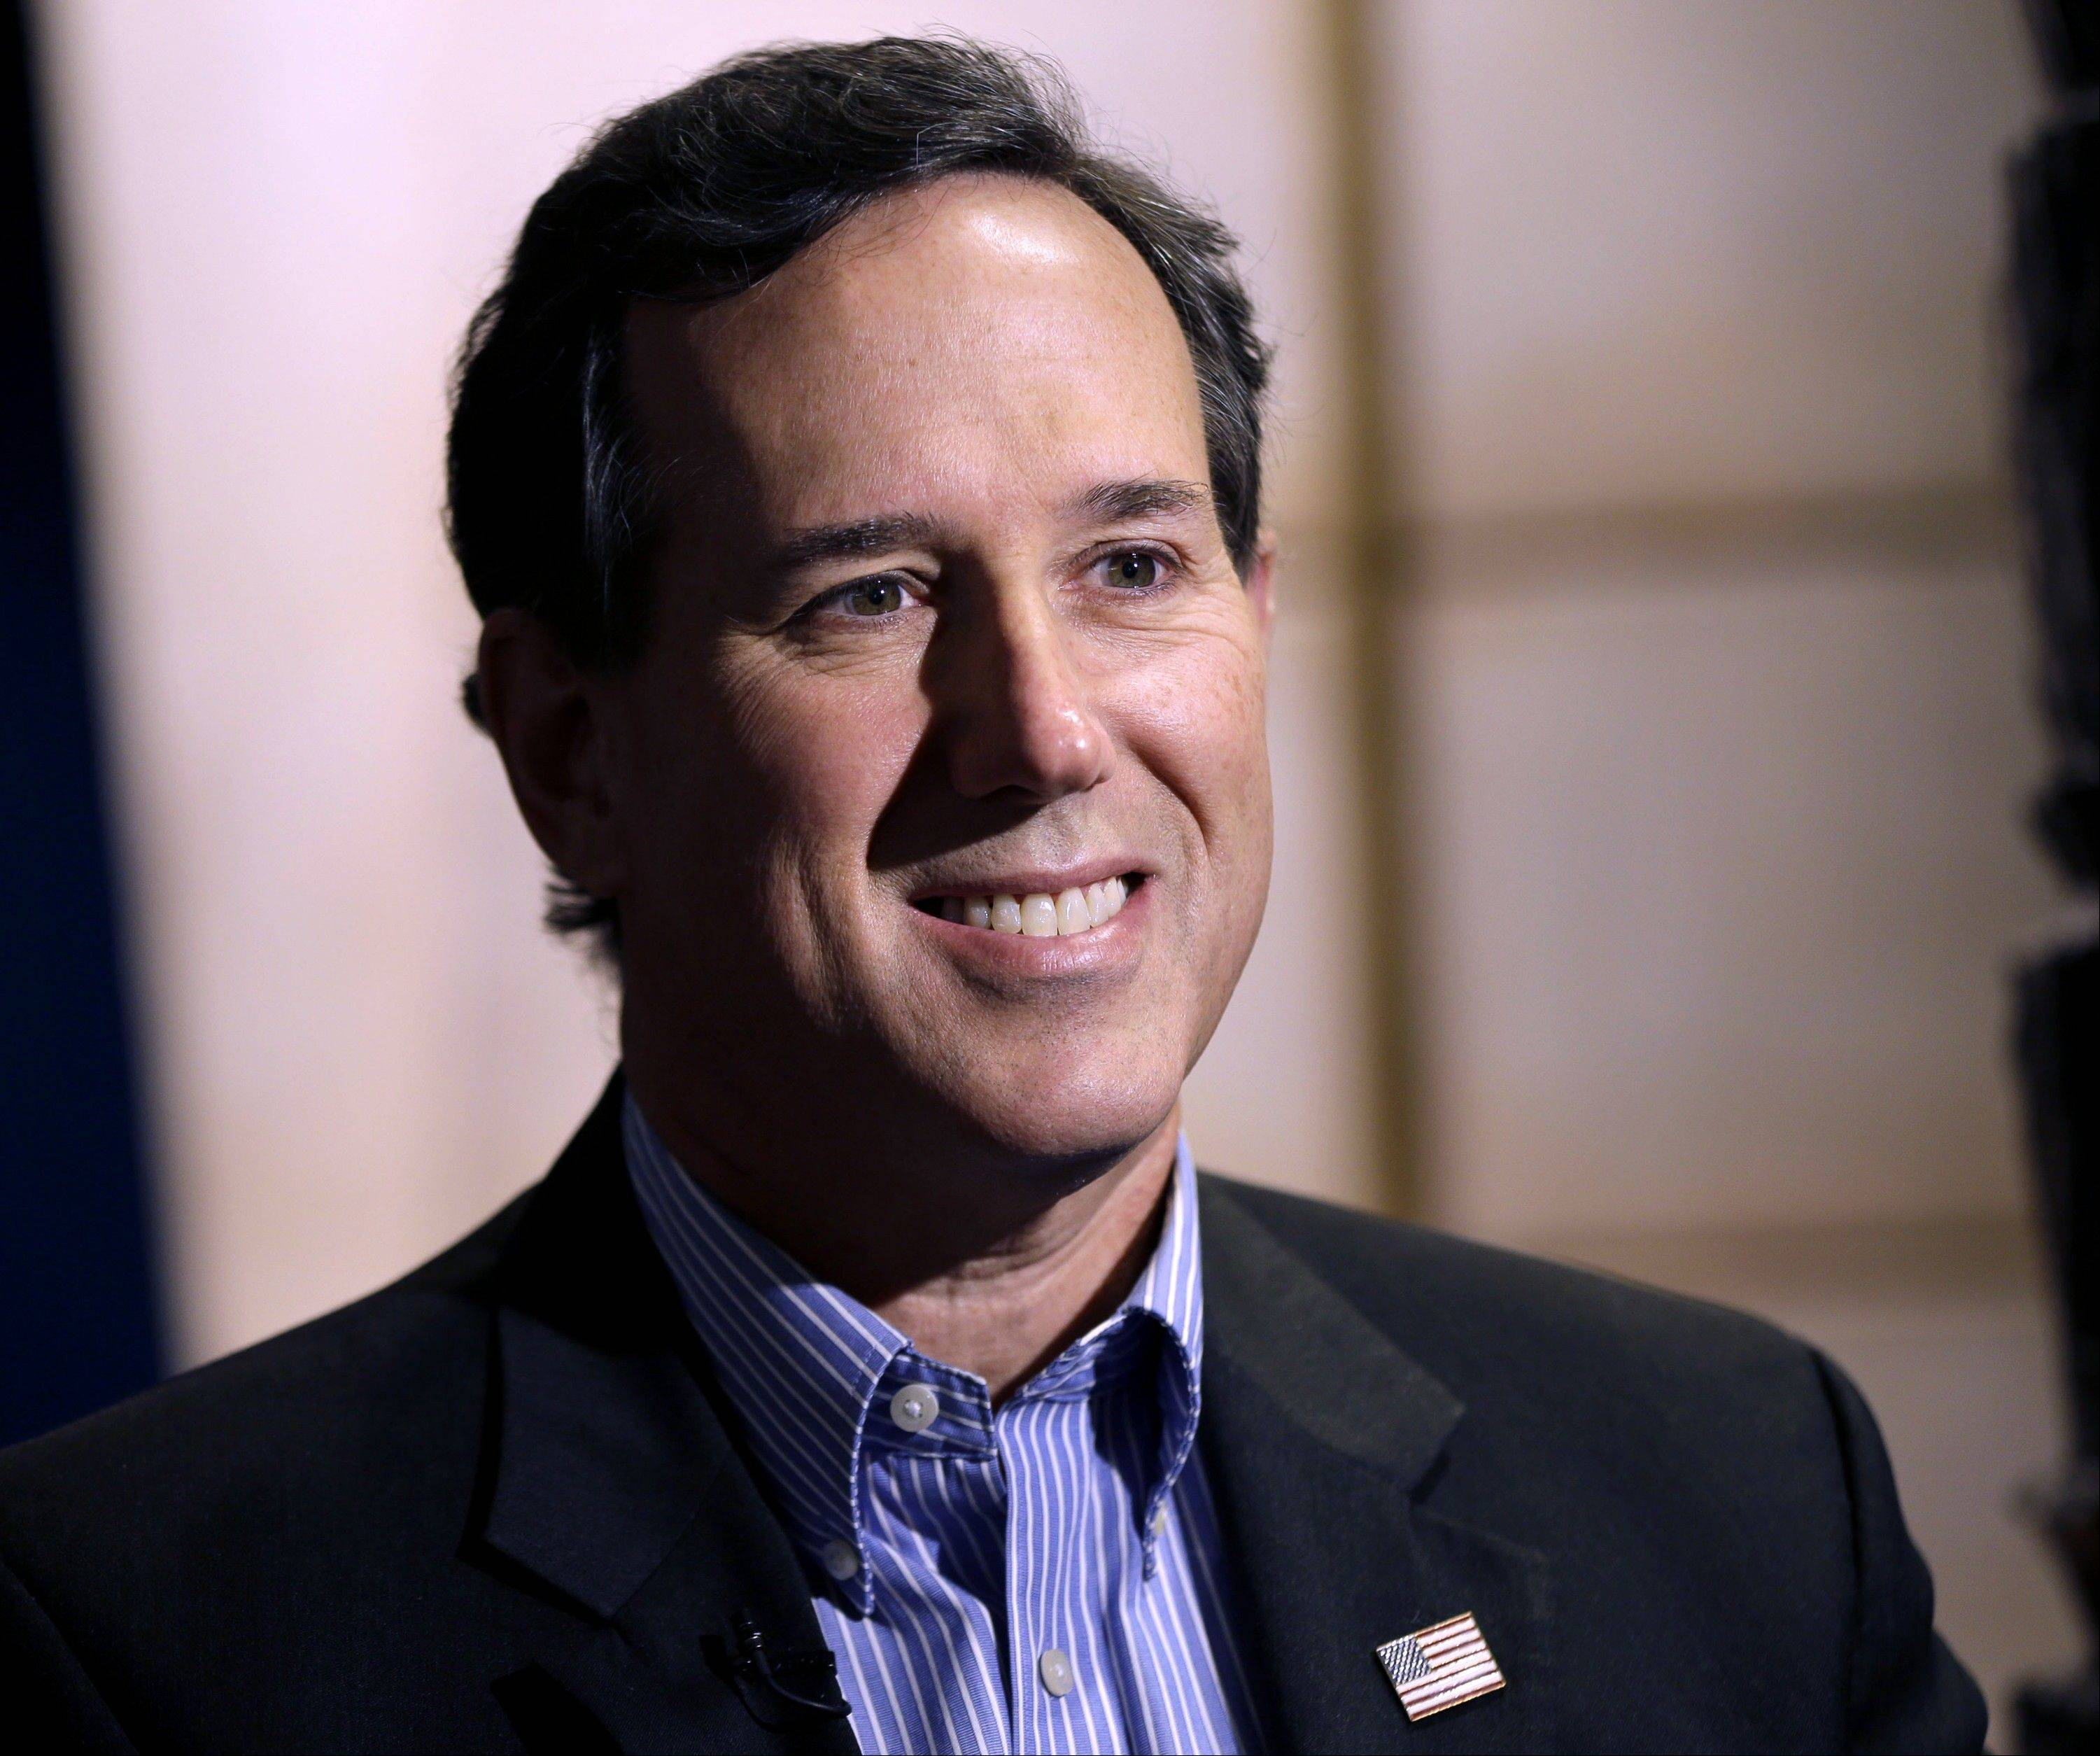 A look at potential presidential candidate Rick Santorum